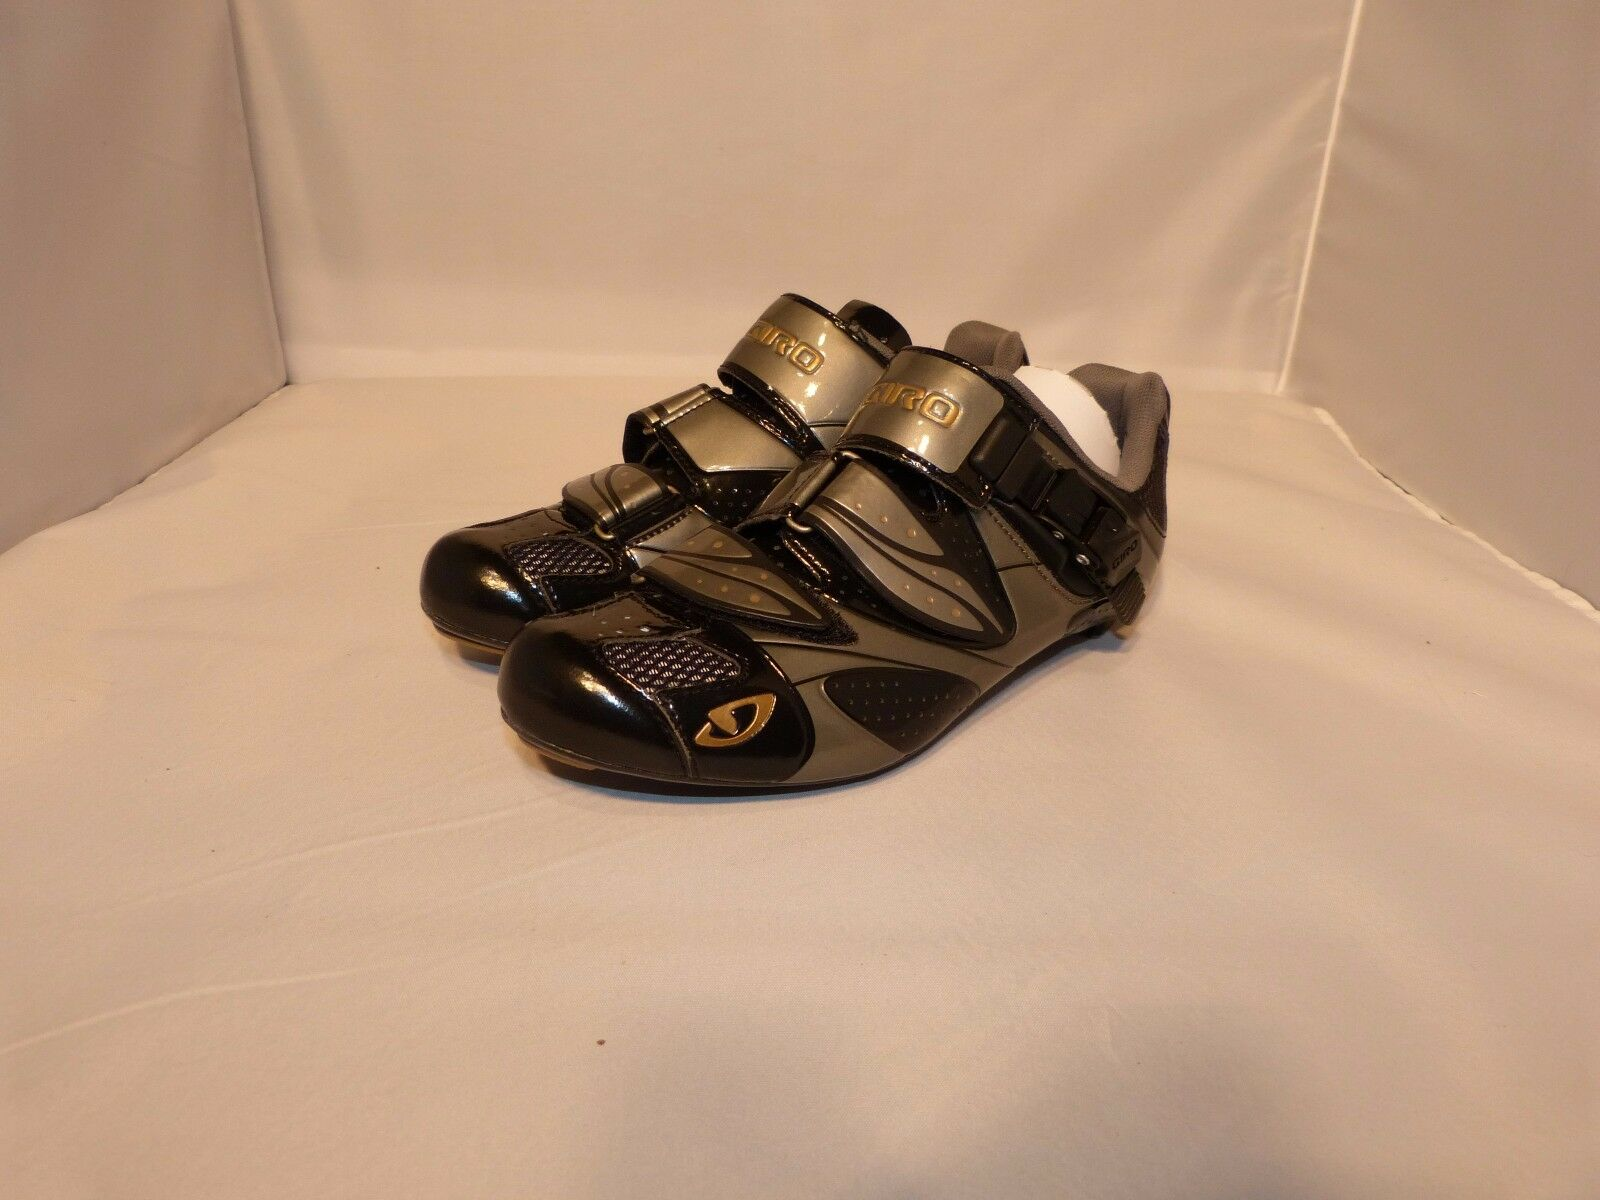 Giro Espada Women's Road Cycling shoes Charcoal Titanium 3 bolt cleats NEW